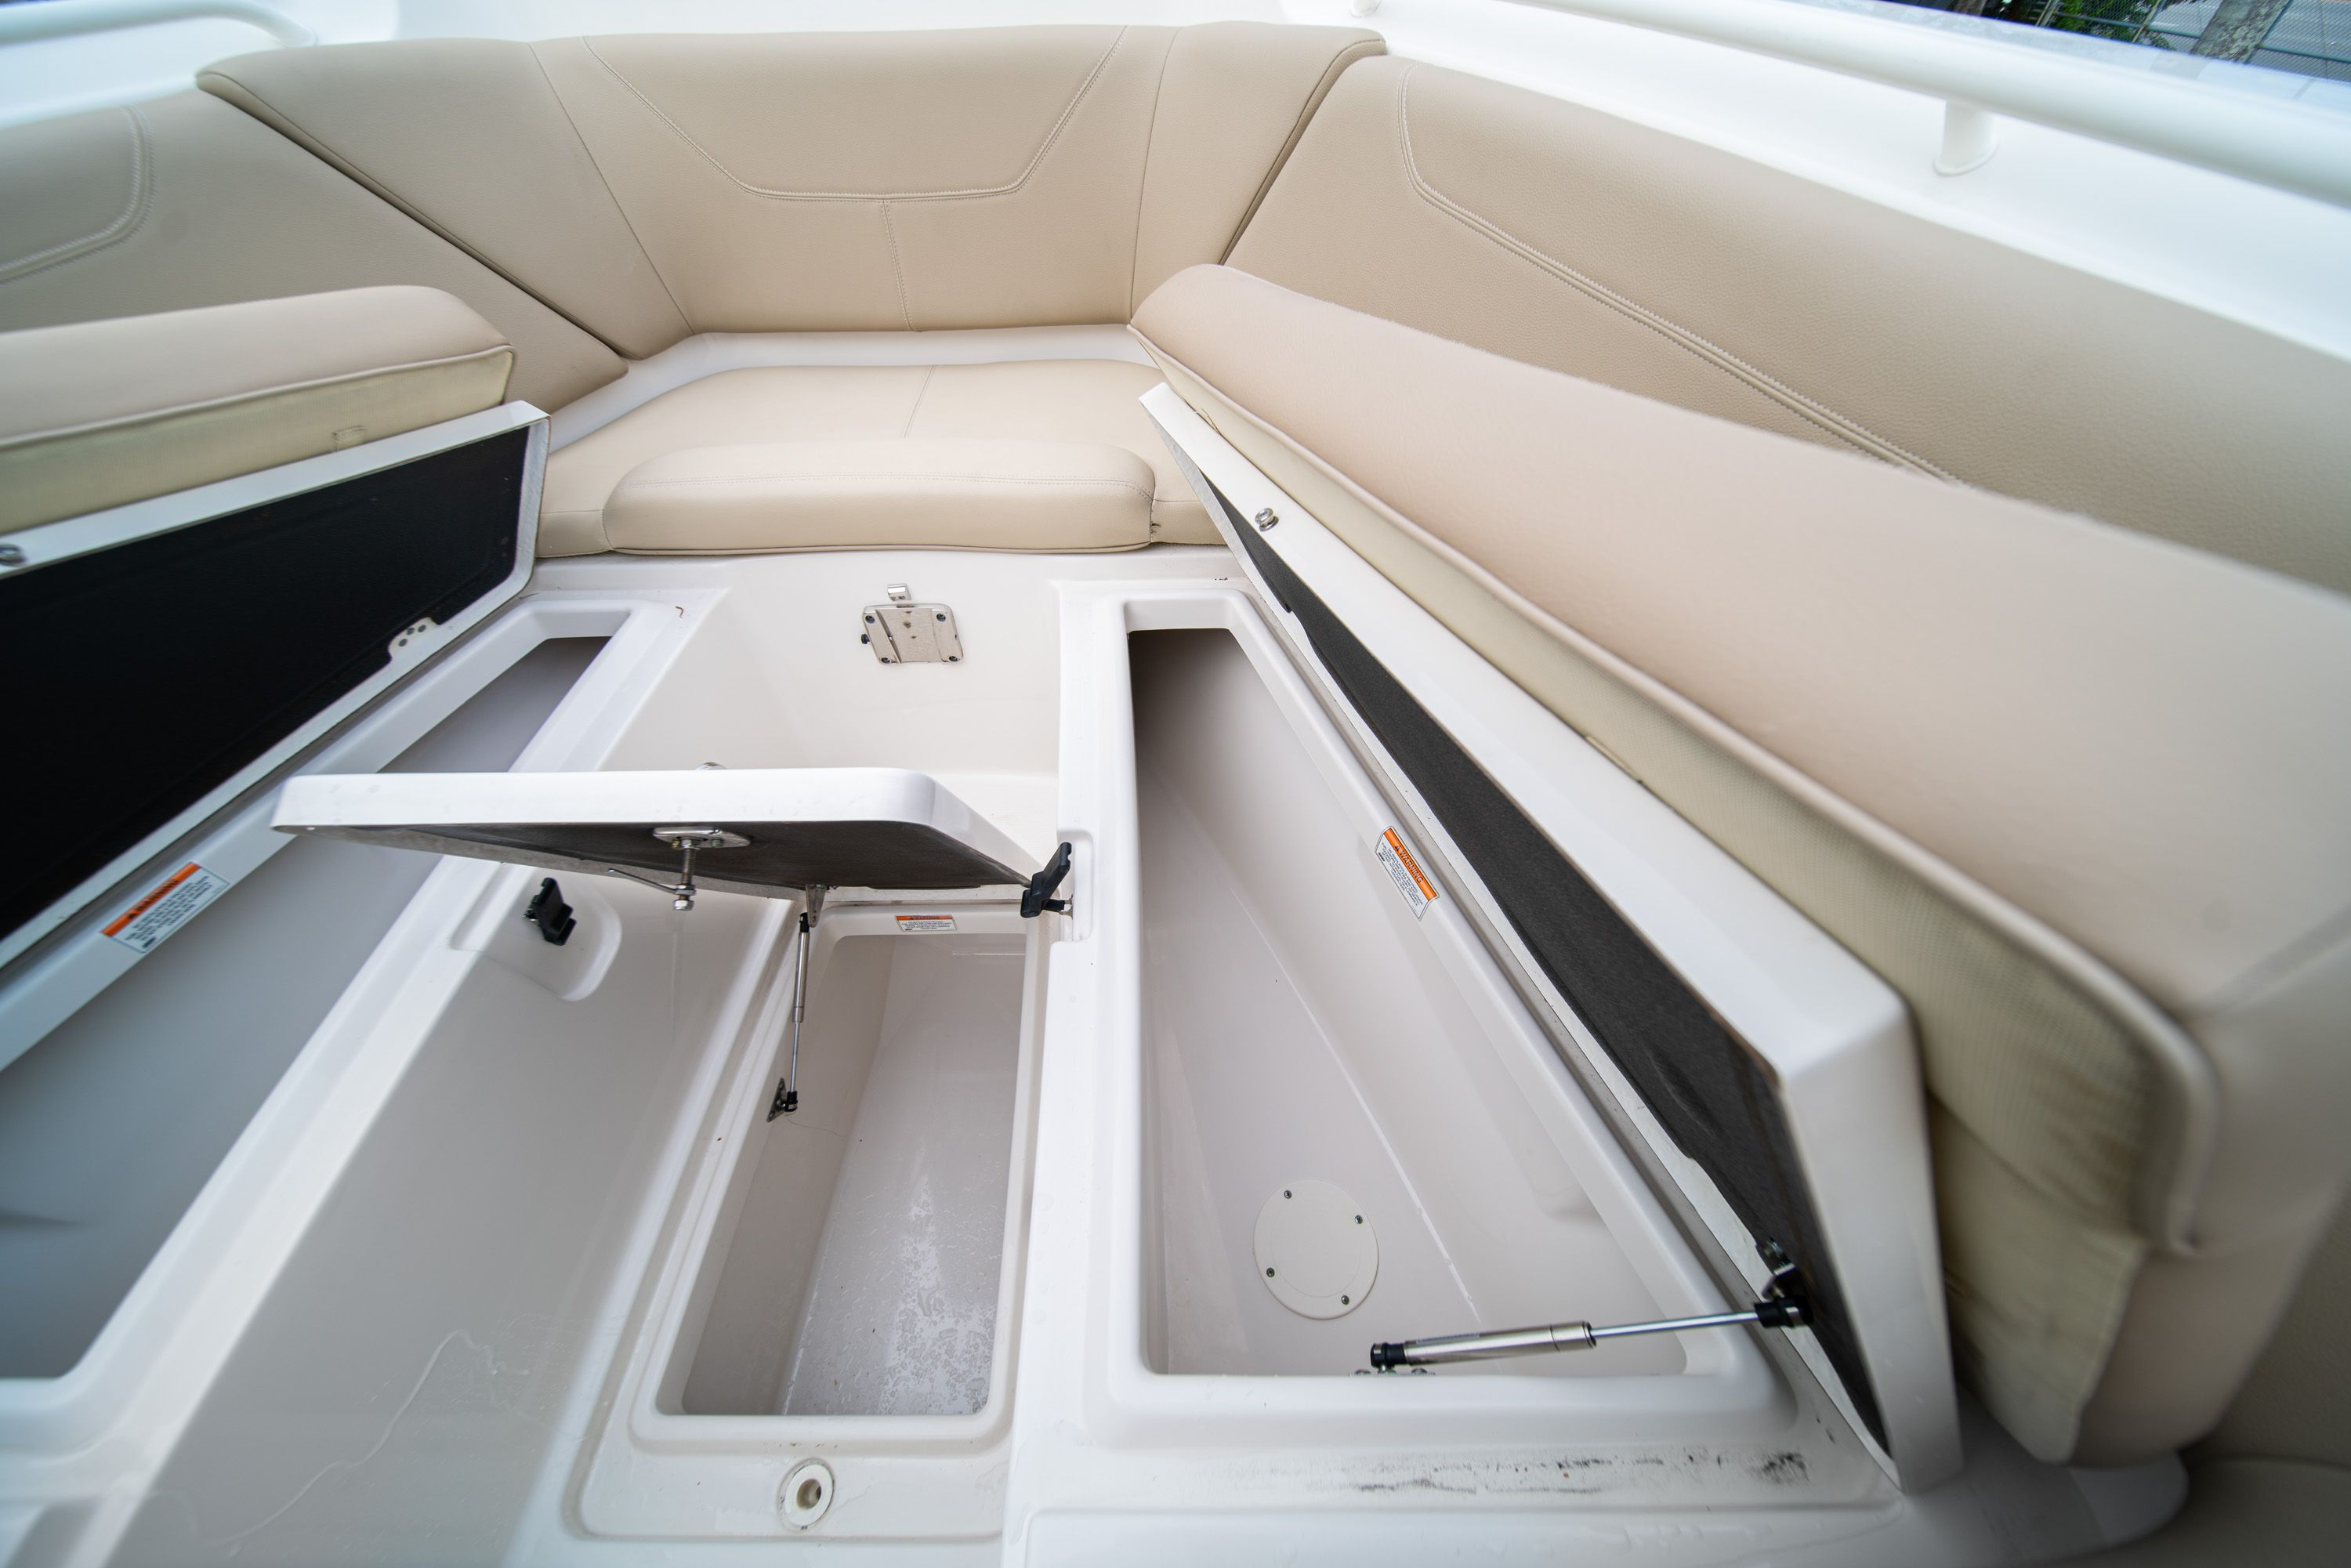 Thumbnail 63 for Used 2017 Sailfish 275 Dual Console boat for sale in West Palm Beach, FL